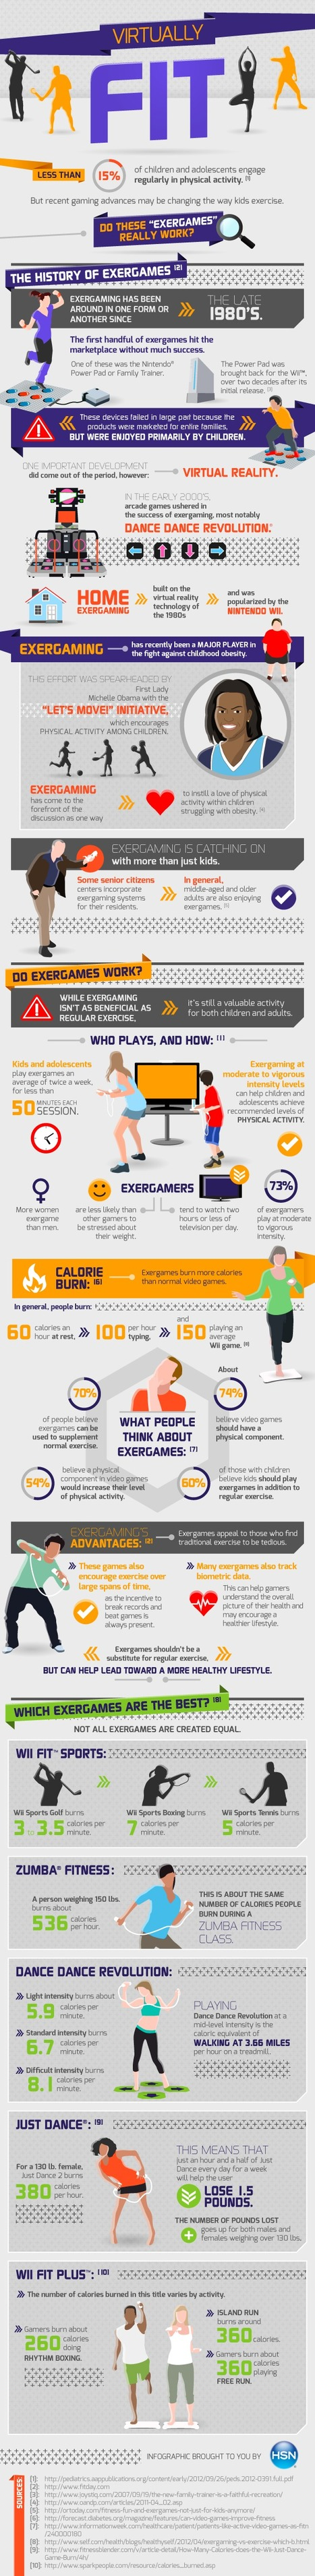 ExerGame Lab: Exergaming Revolution (infographic) | GAMIFICATION & SERIOUS GAMES IN HEALTH by PHARMAGEEK | Scoop.it